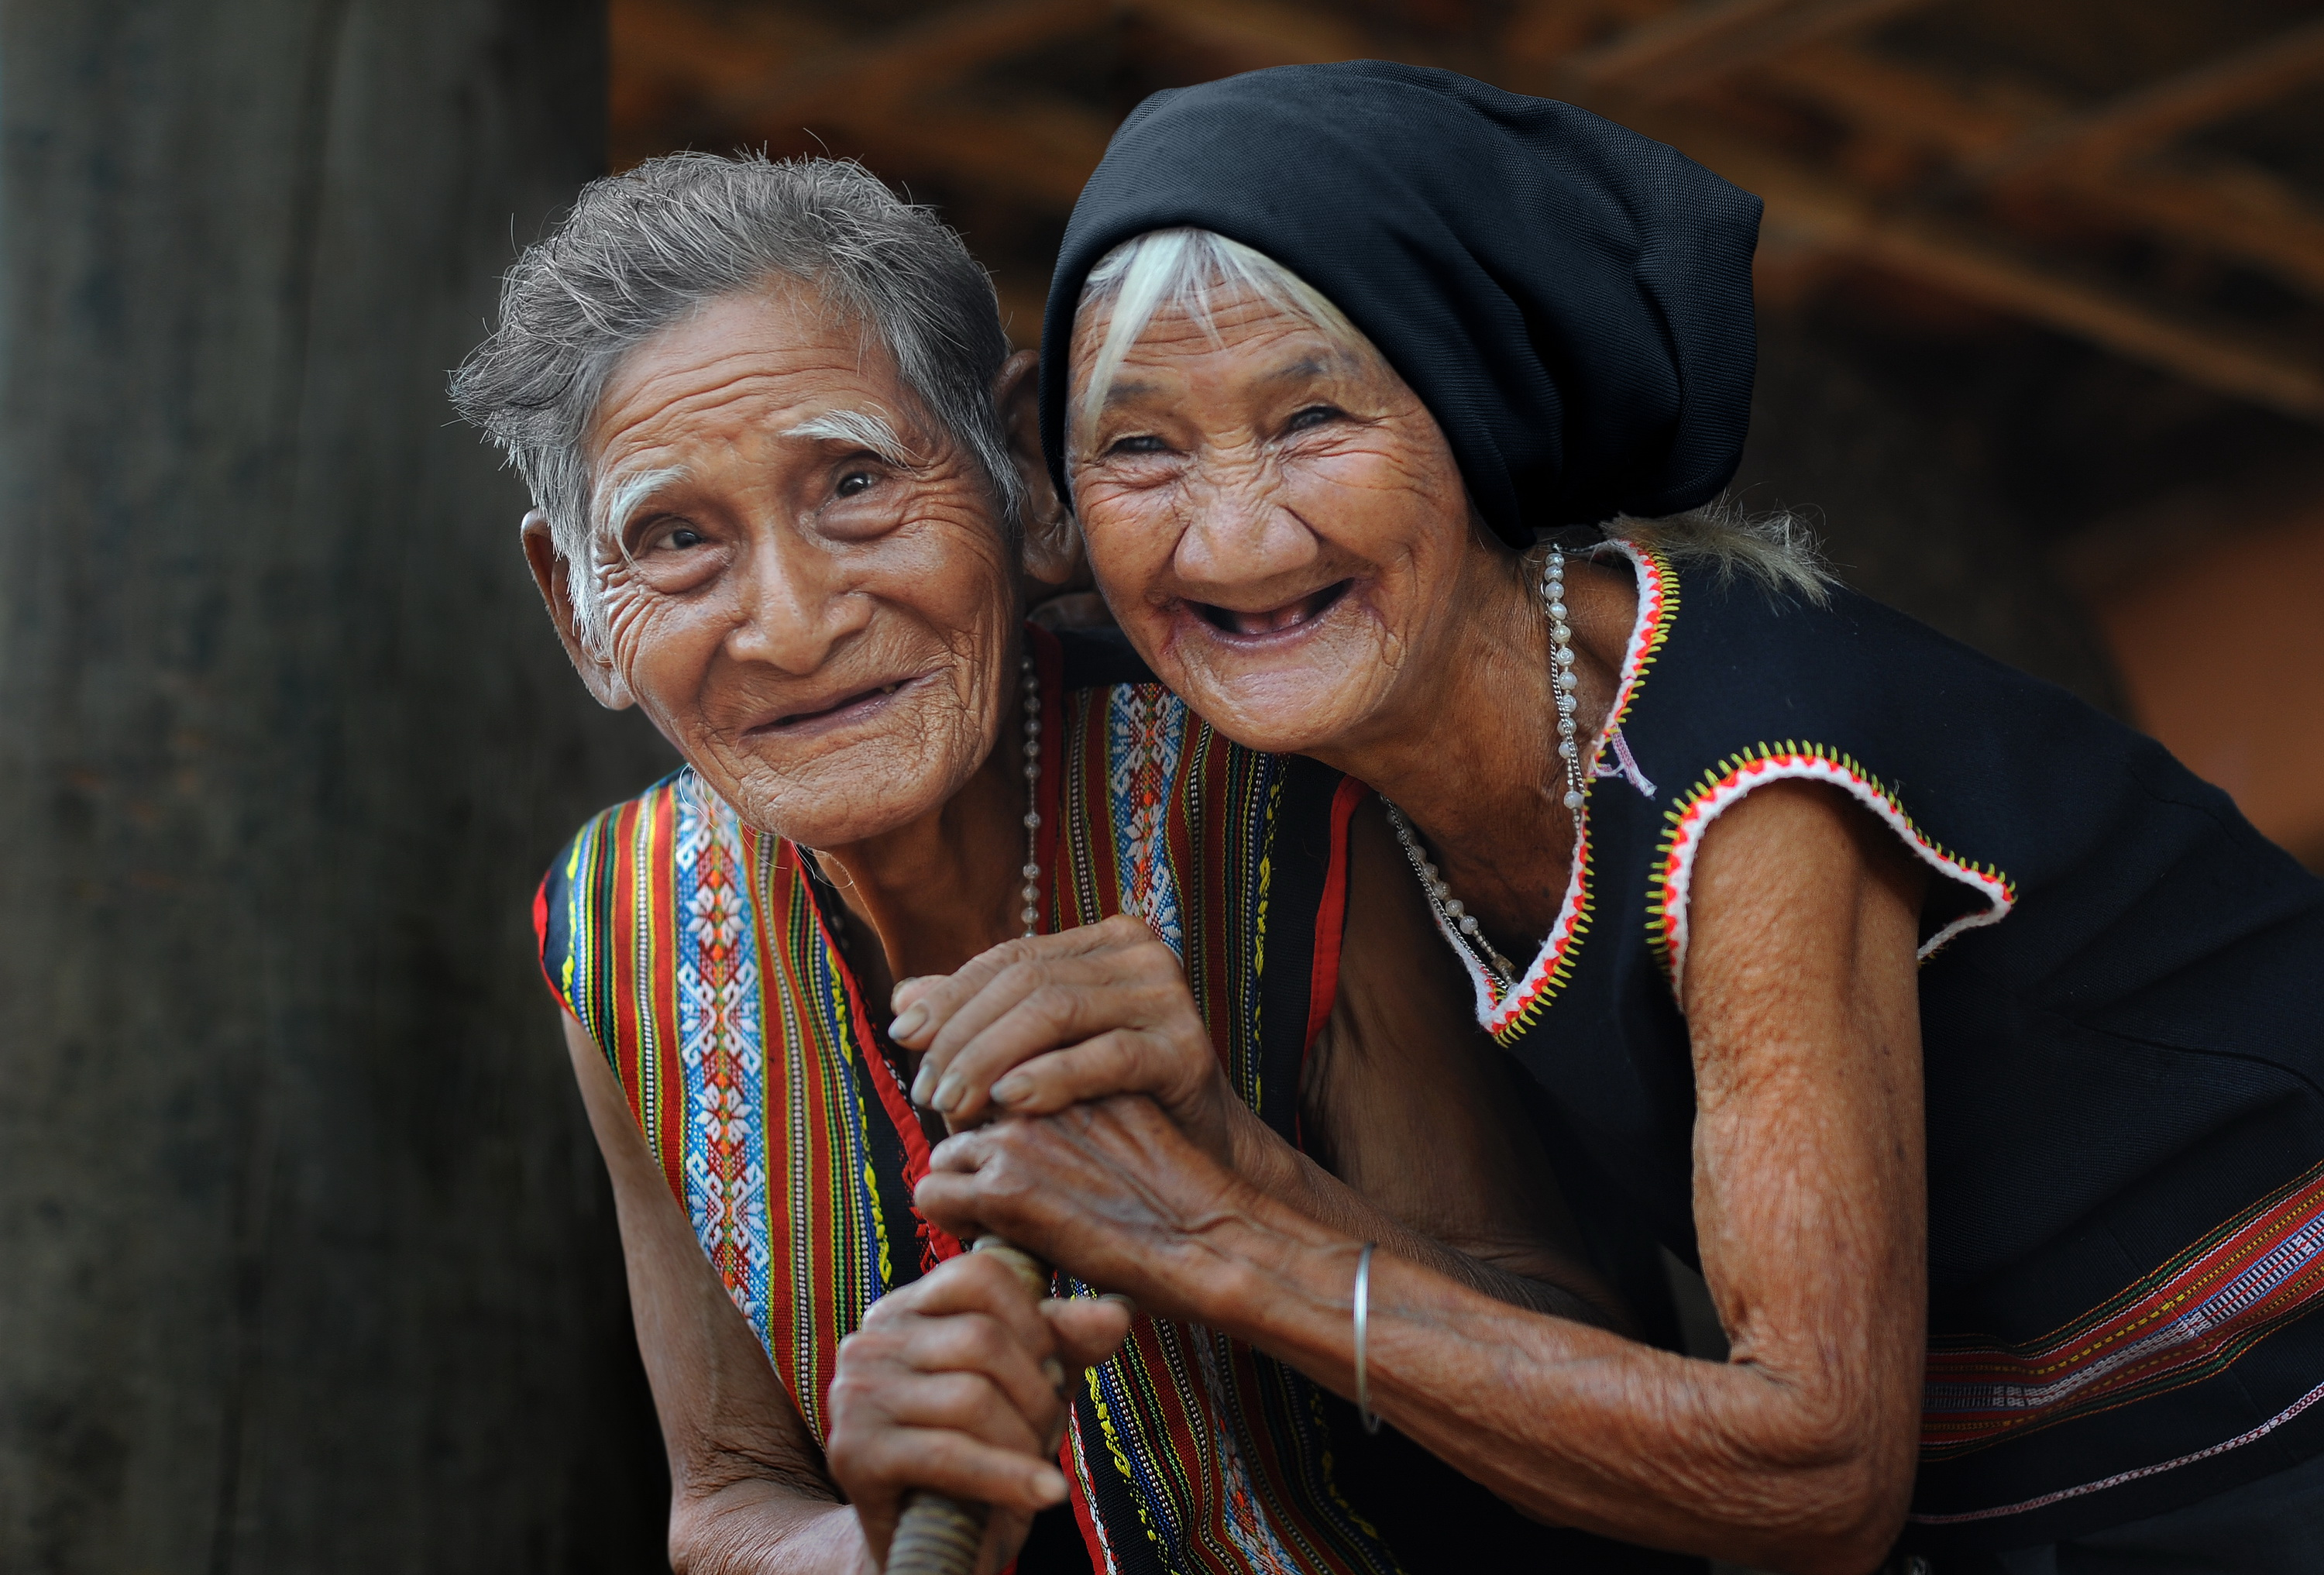 Two cheerful older women look happily at the camera.